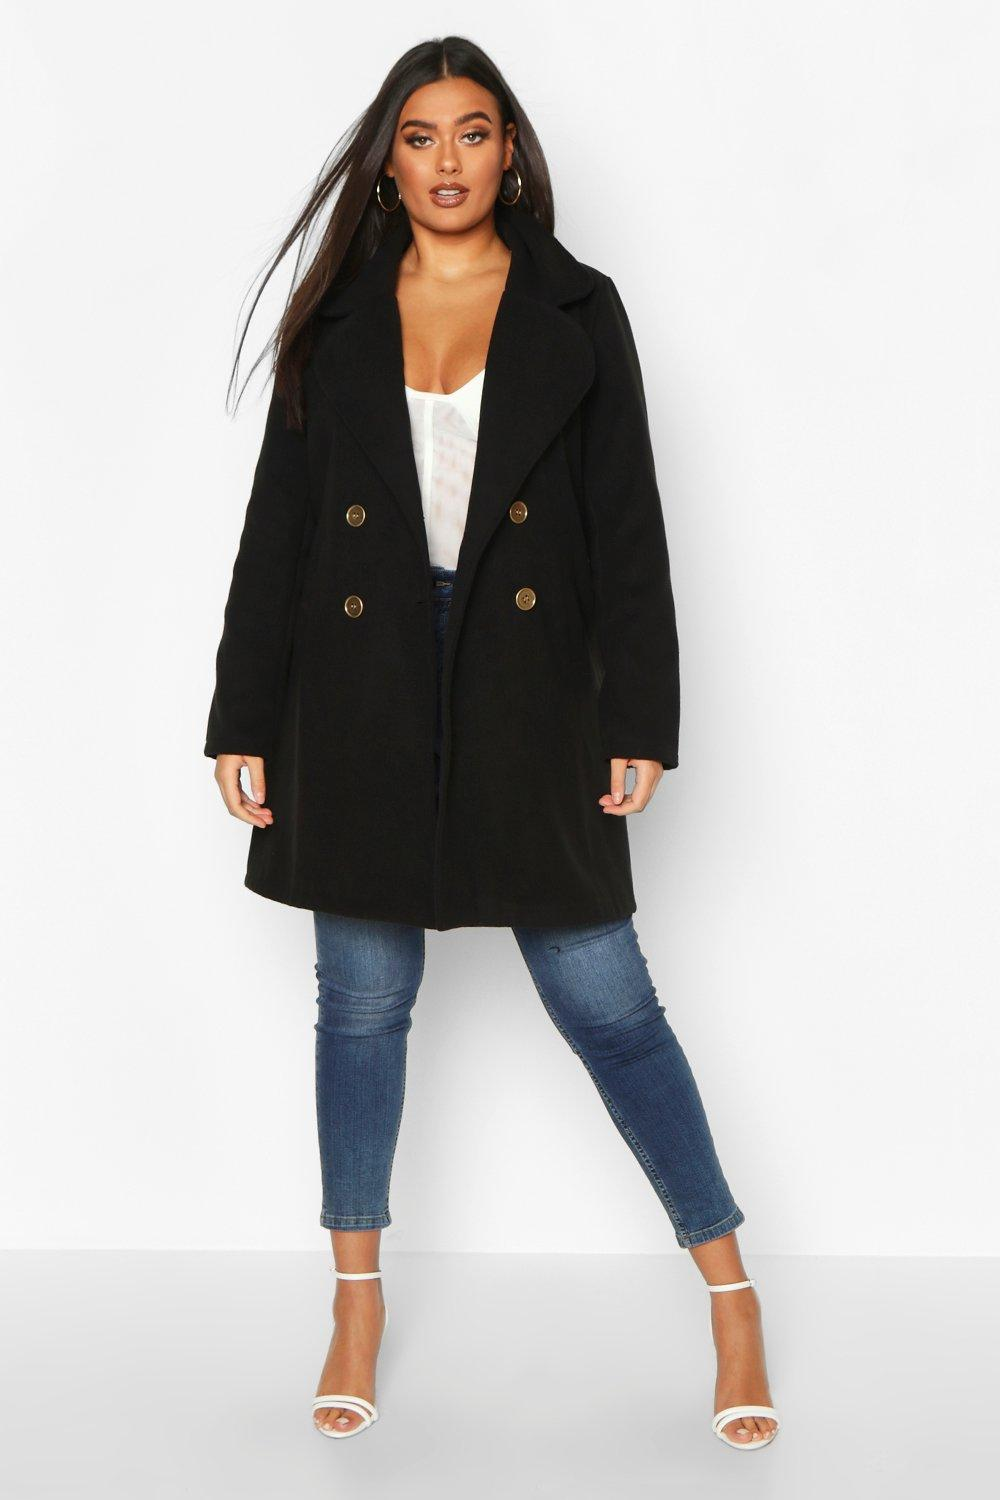 boohoo Womens Plus Double Breasted Button Wool Look Coat - Black - 18, Black